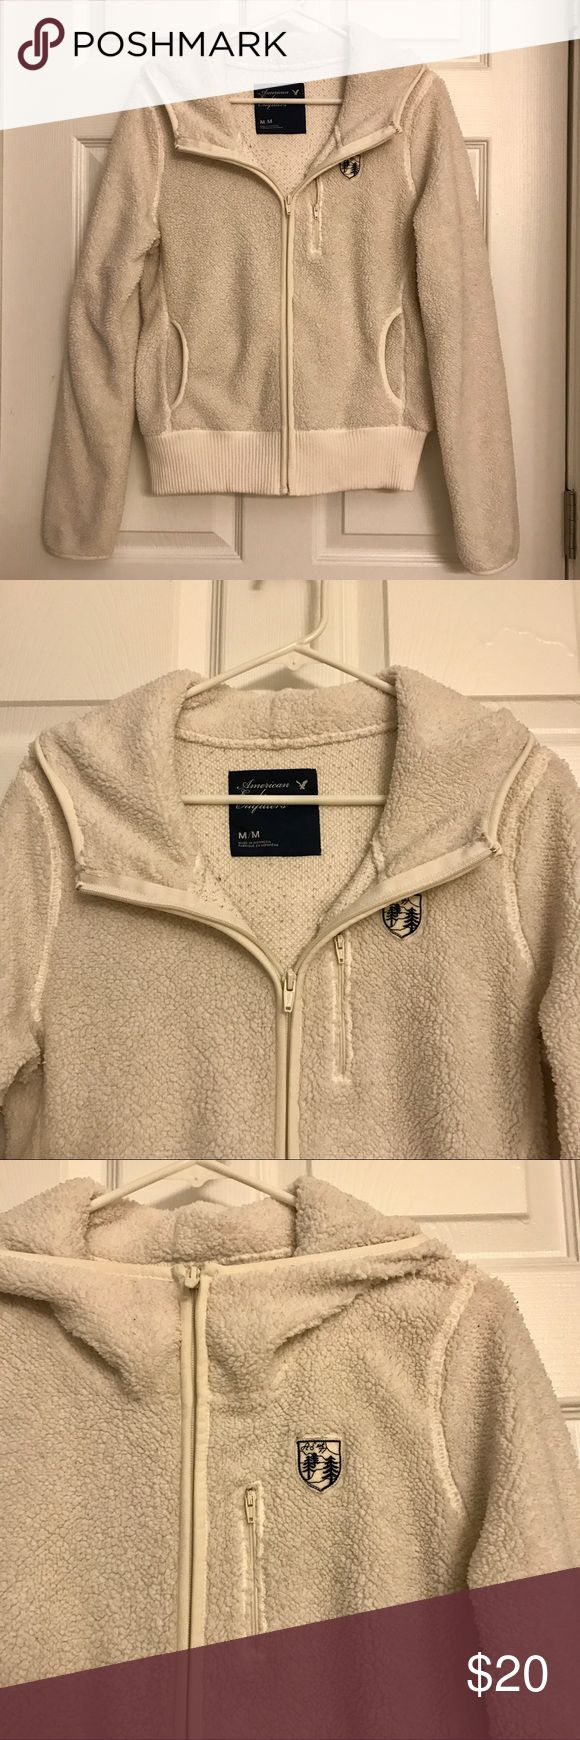 Fuzzy American Eagle Zip Up Jacket Women's zip up jacket • Fuzzy and cozy material • Bought from American Eagle • Cream color • Pockets • Hood • Pilling on inside of jacket (see picture) • American Eagle Outfitters Sweaters